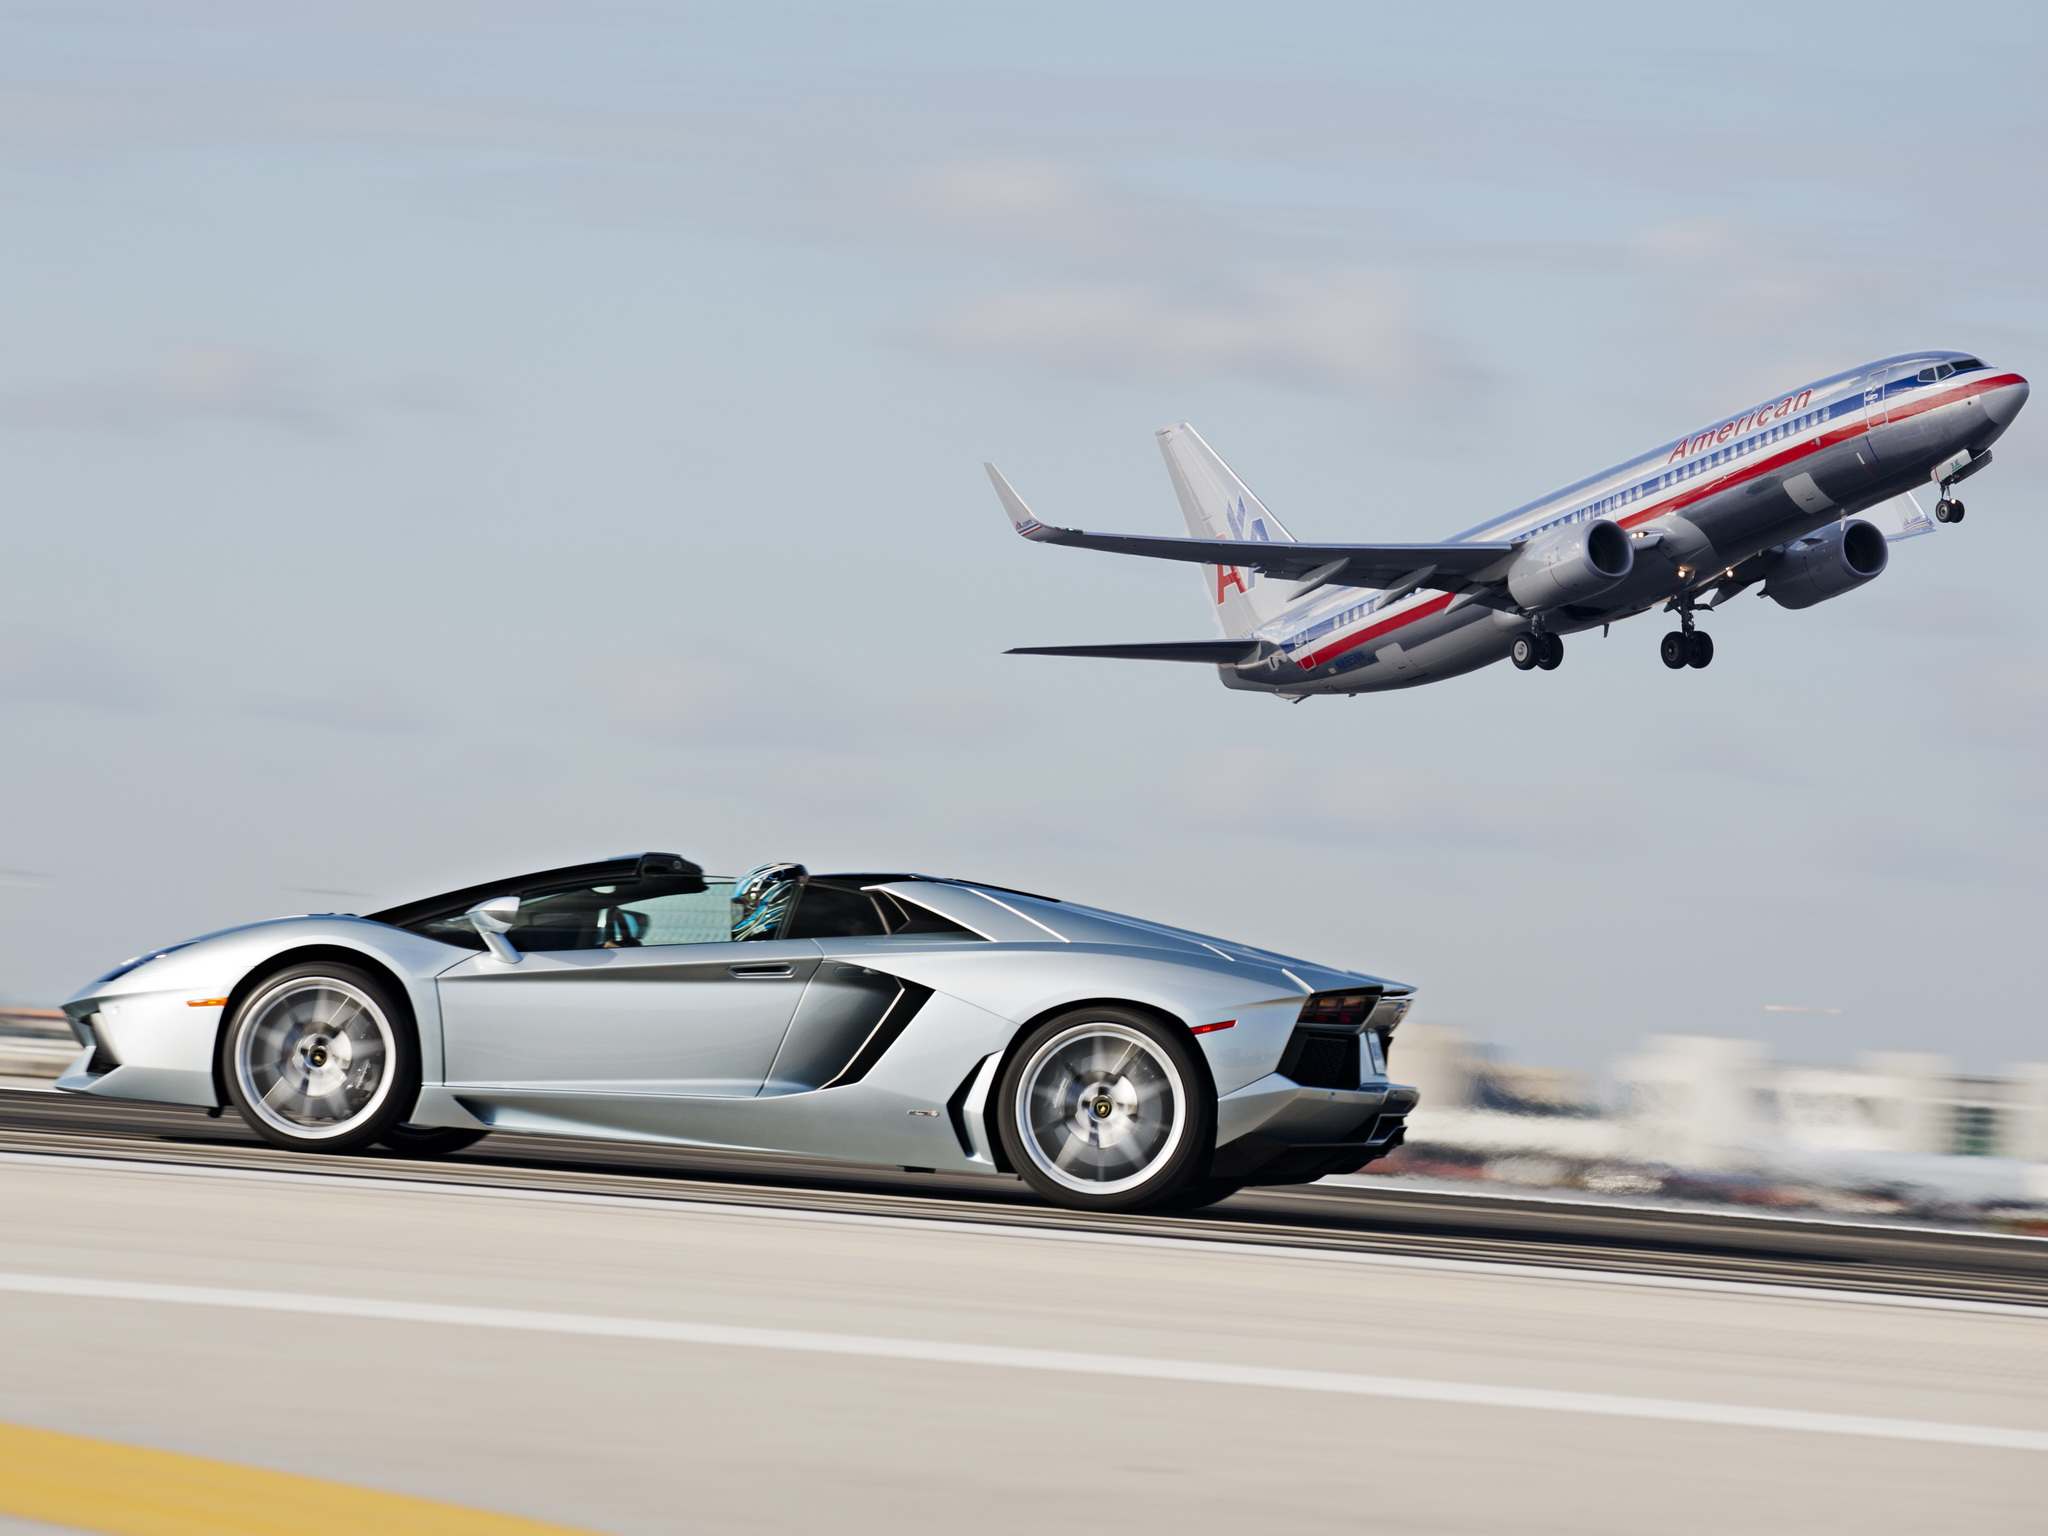 2014 Lamborghini Aventador Roadster supercar silver airplanet jets 2048x1536